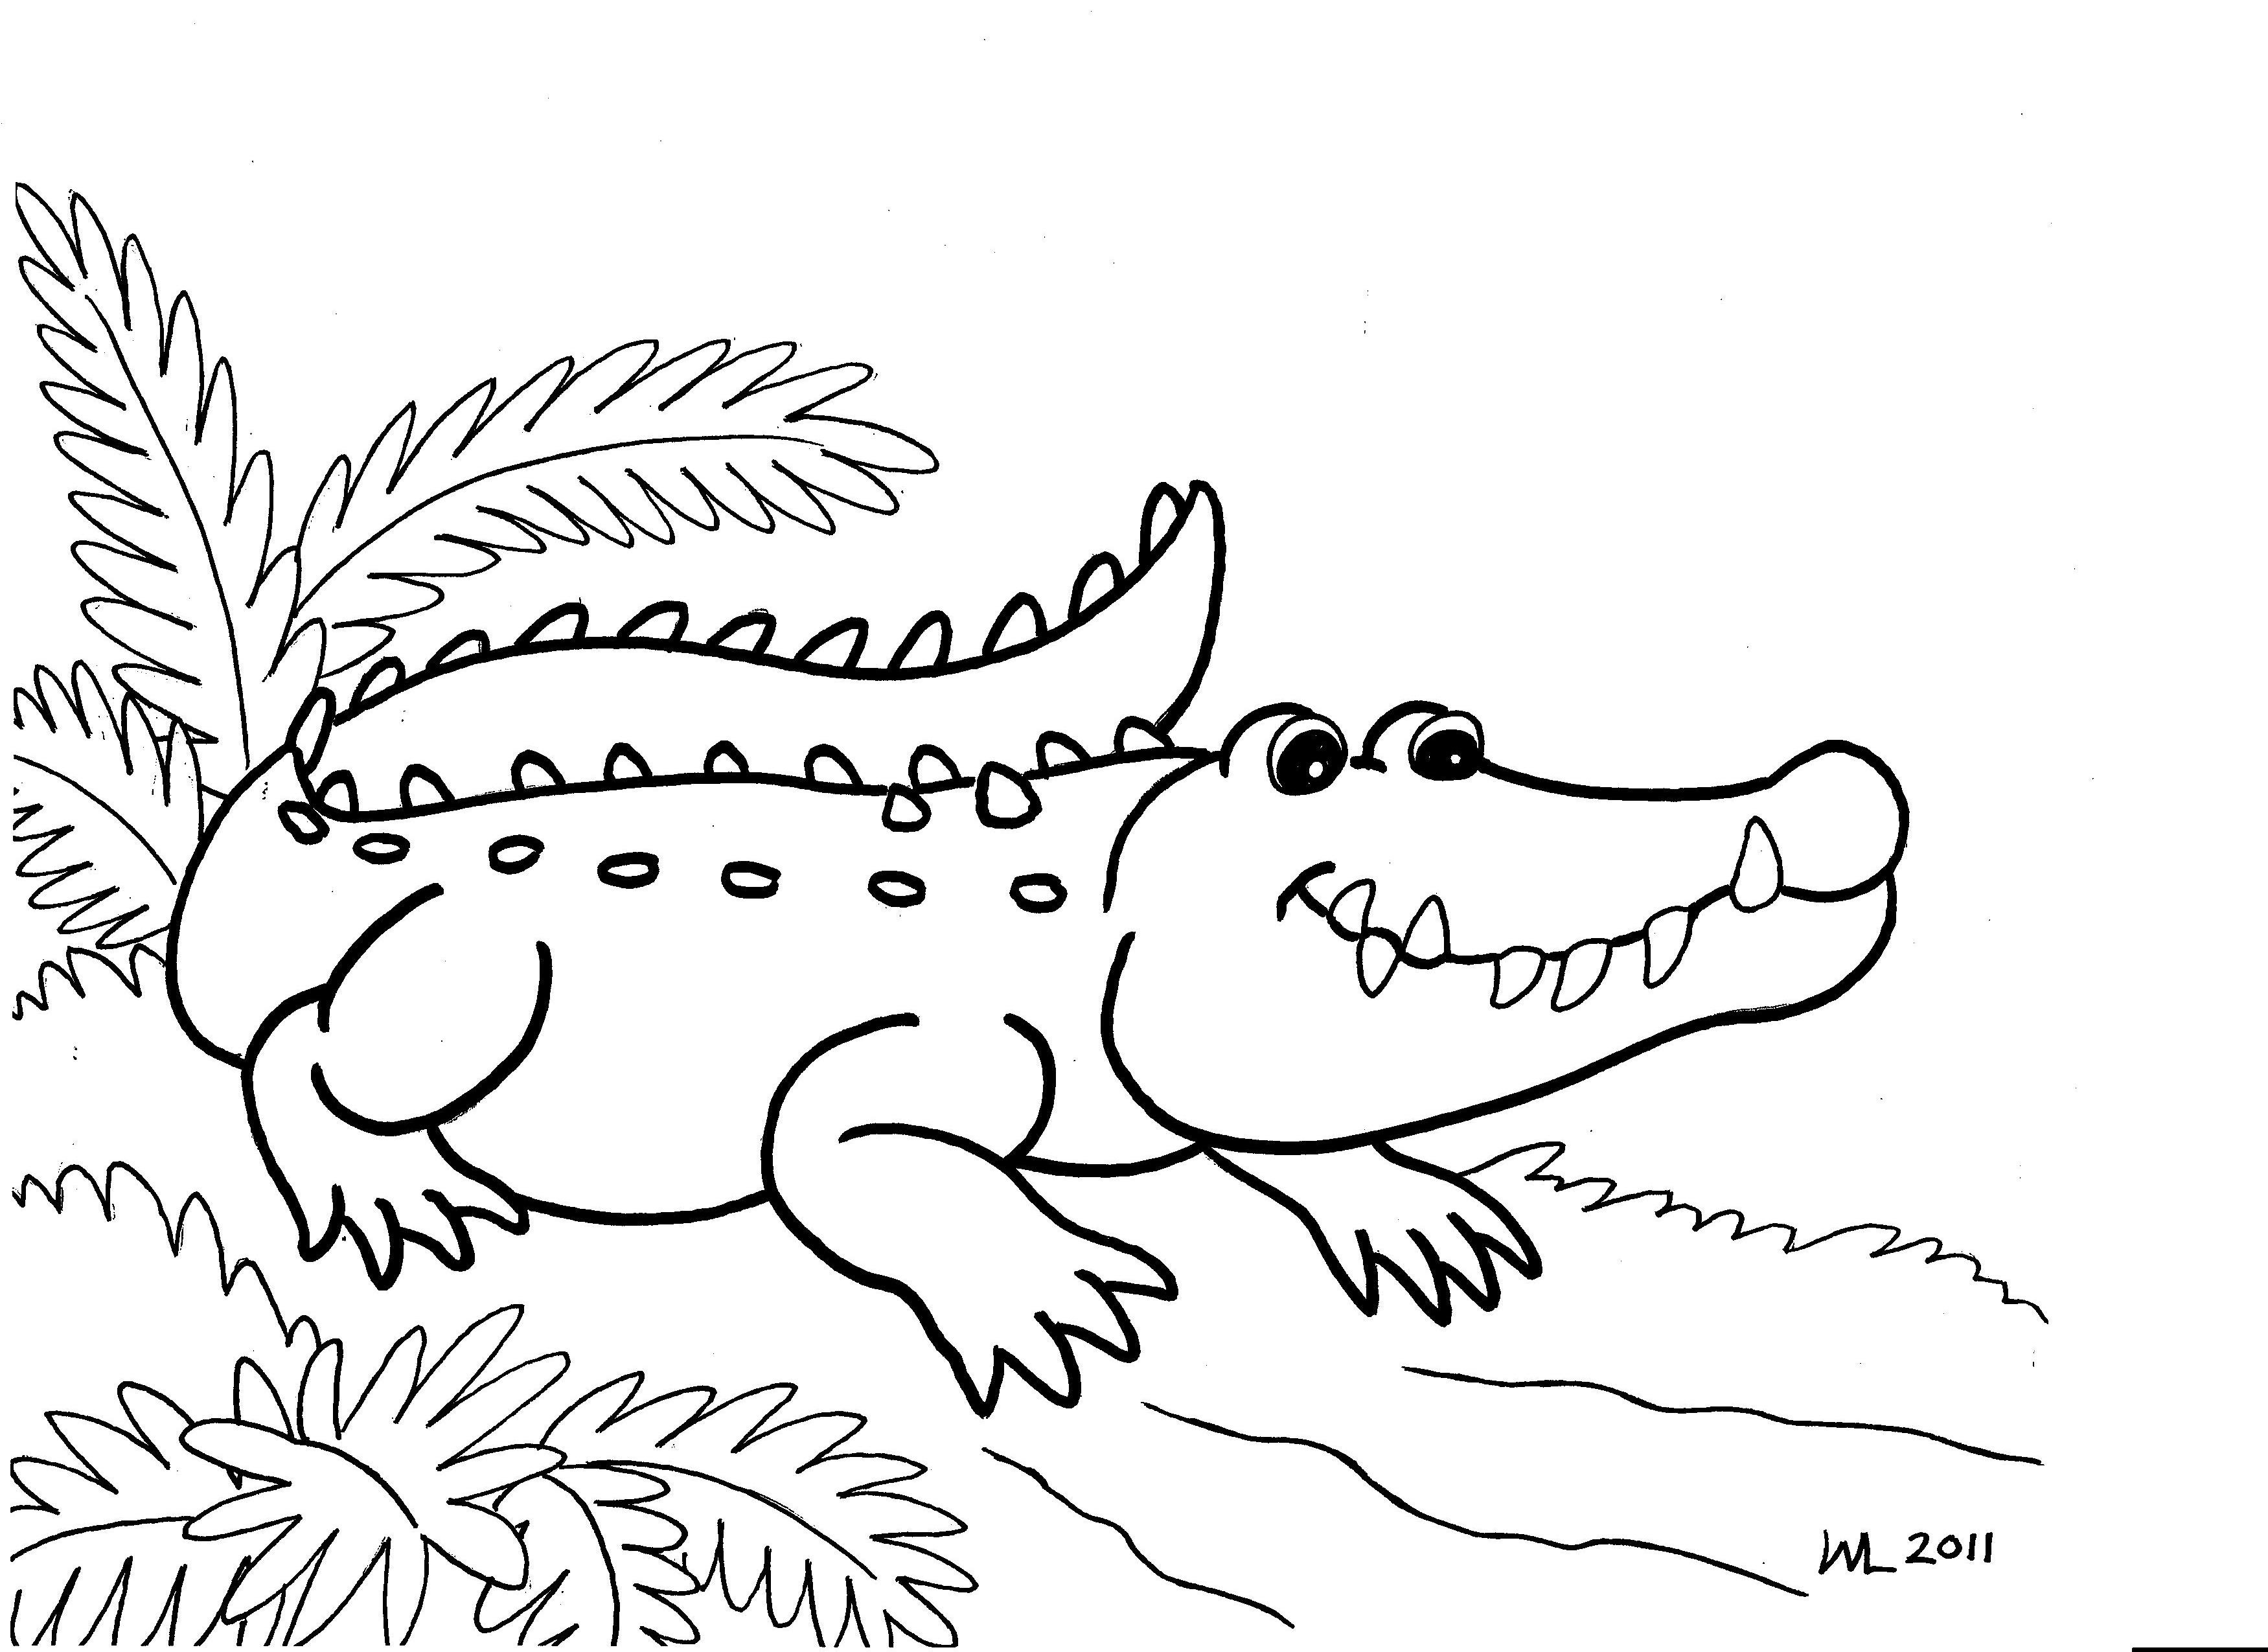 Crocodile Coloring Pages - Croc Coloring Pages At Getdrawings Com - Free Printable Pictures Of Crocodiles